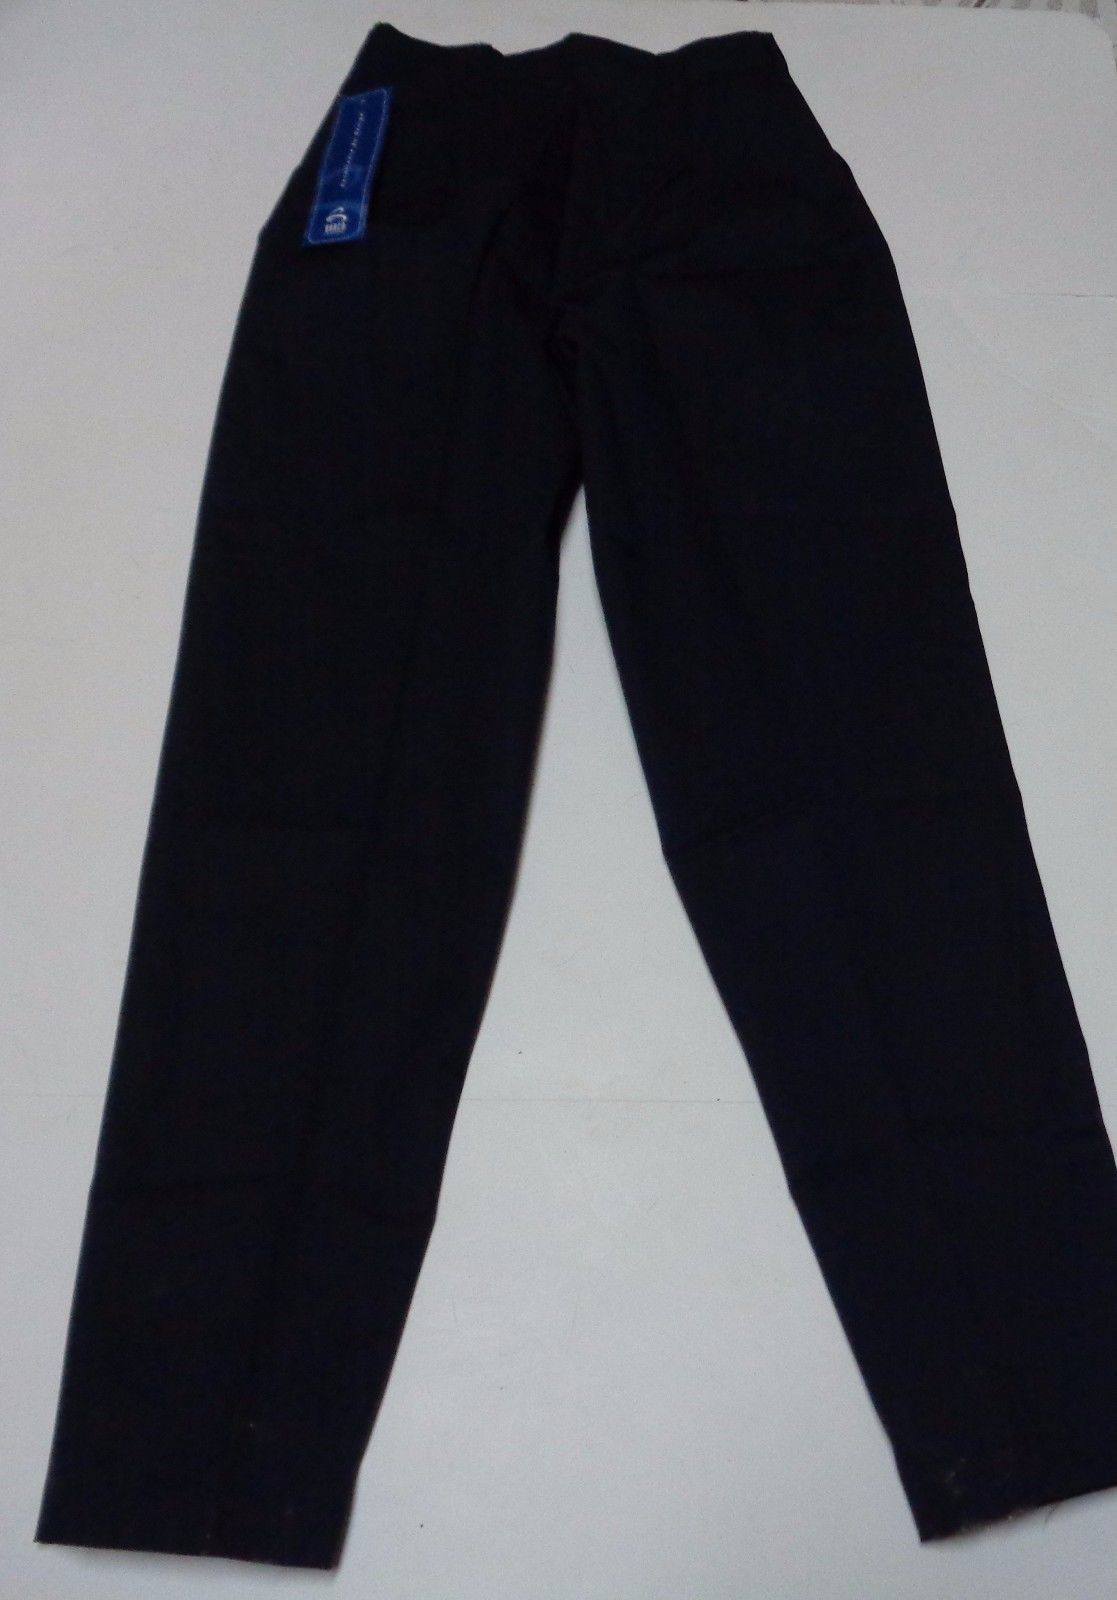 Primary image for Barco Ladie's Uniform Pants Navy Blue SZ 12 NWT Pleated Front